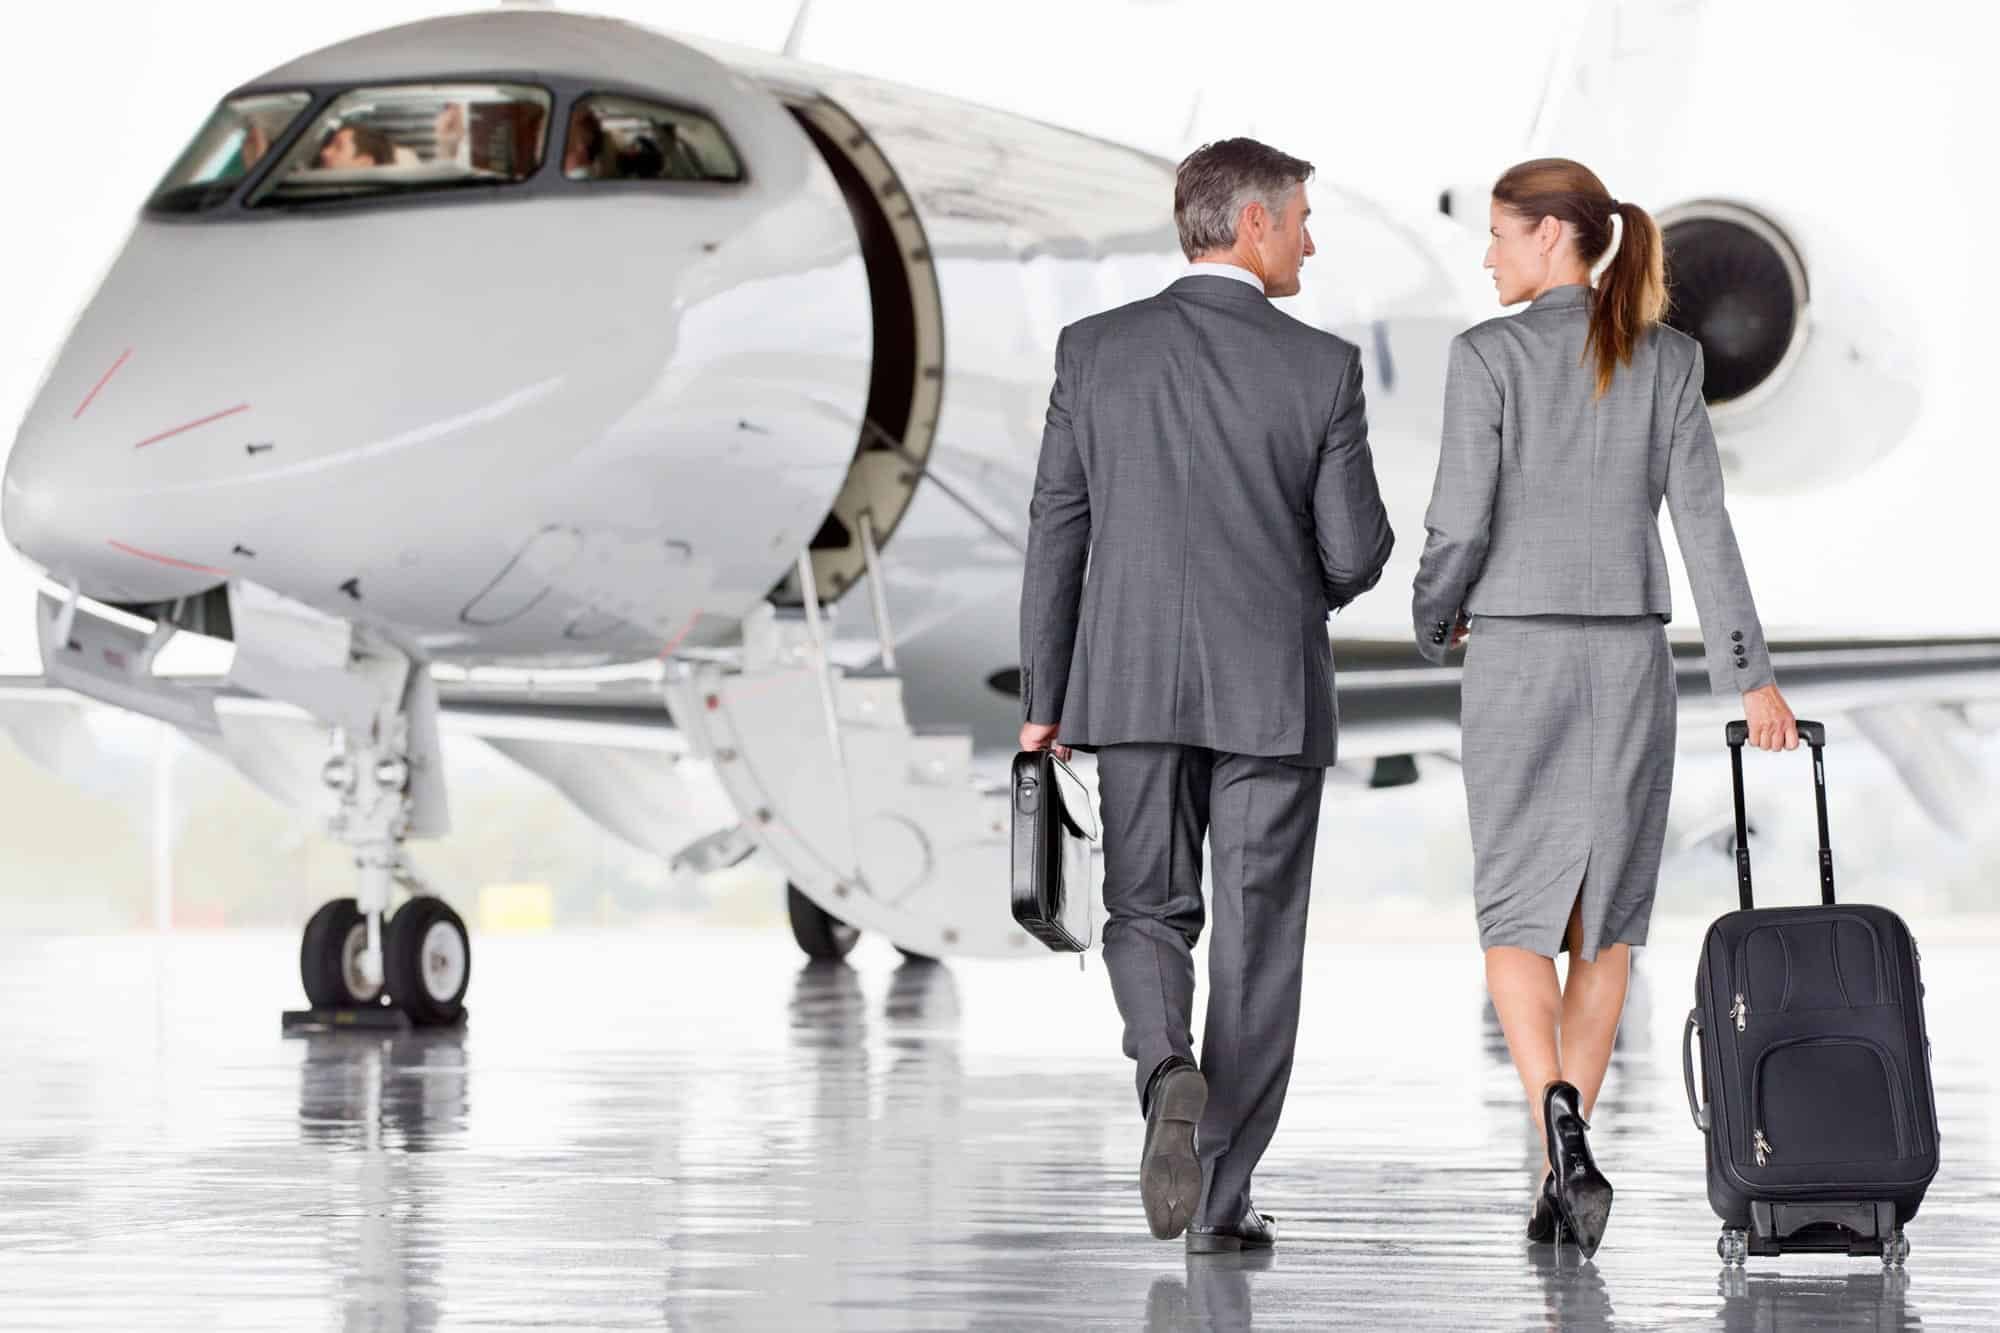 Fortune 500 Company Executives walking to a Private Jet